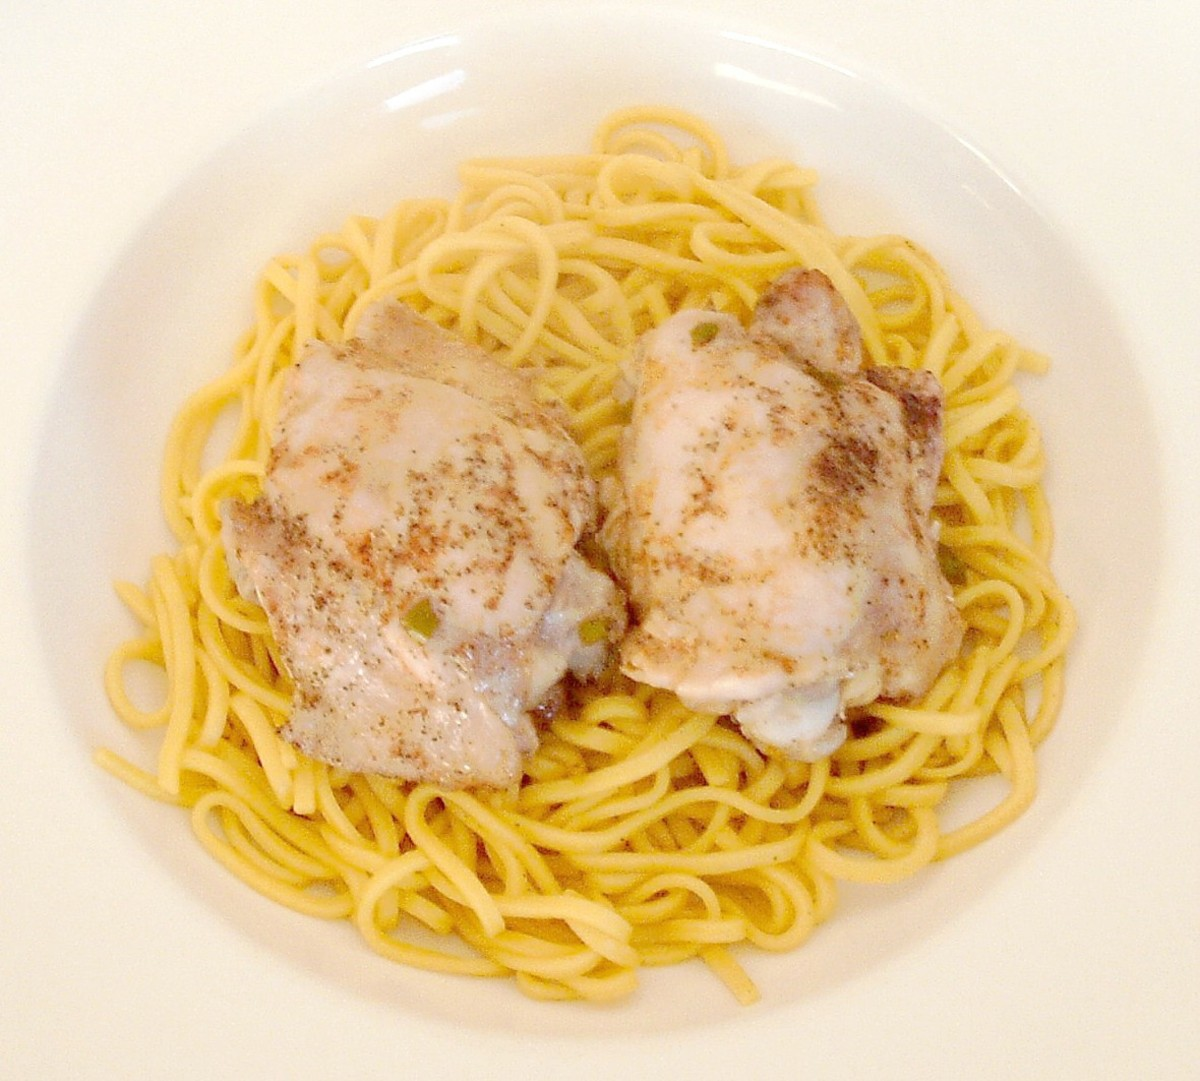 Chicken thighs are sat atop egg noodles